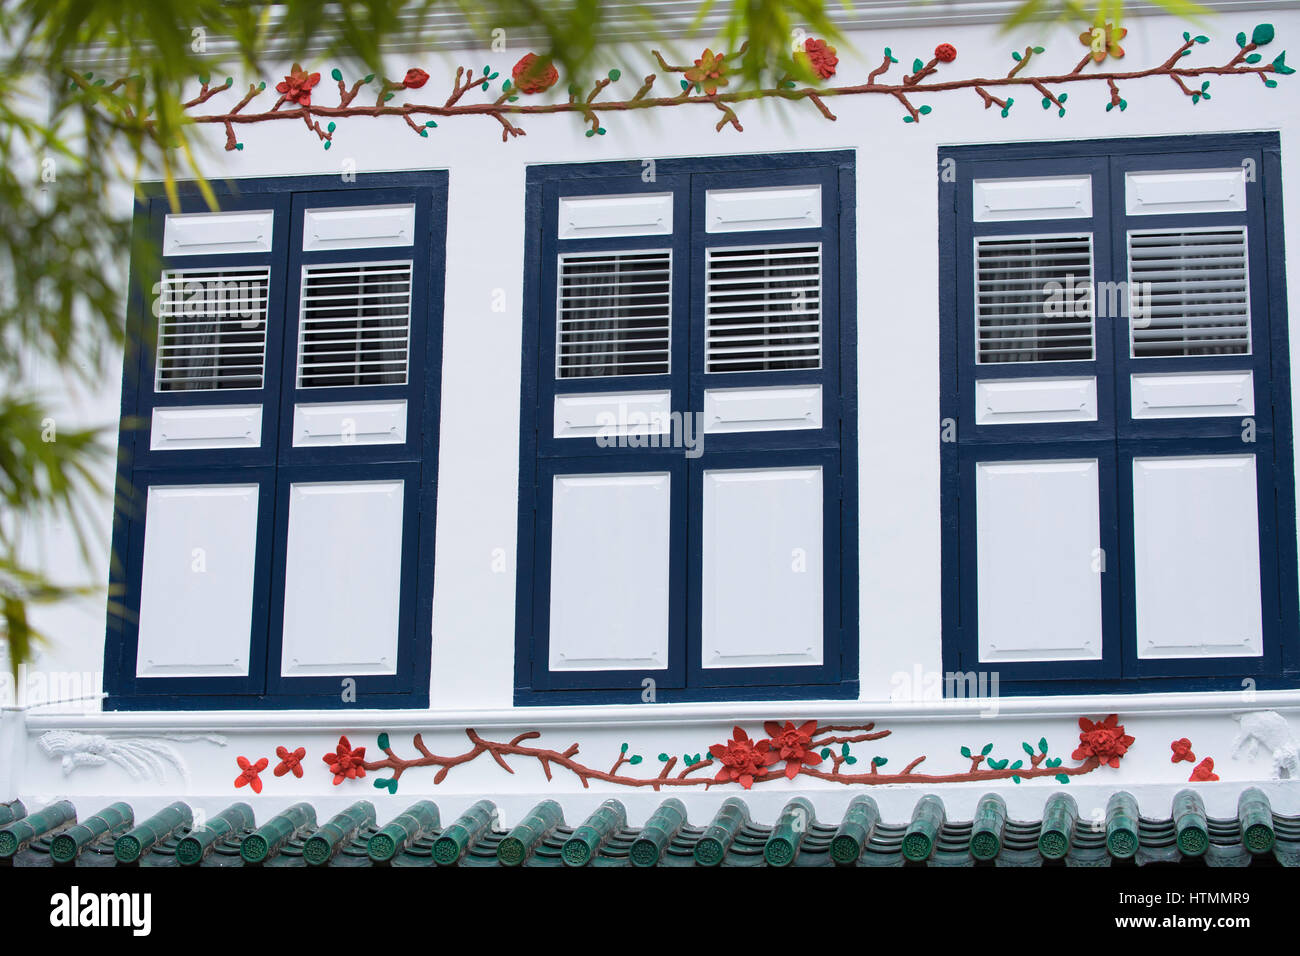 Shutters of traditional house, Chinatown, Singapore - Stock Image